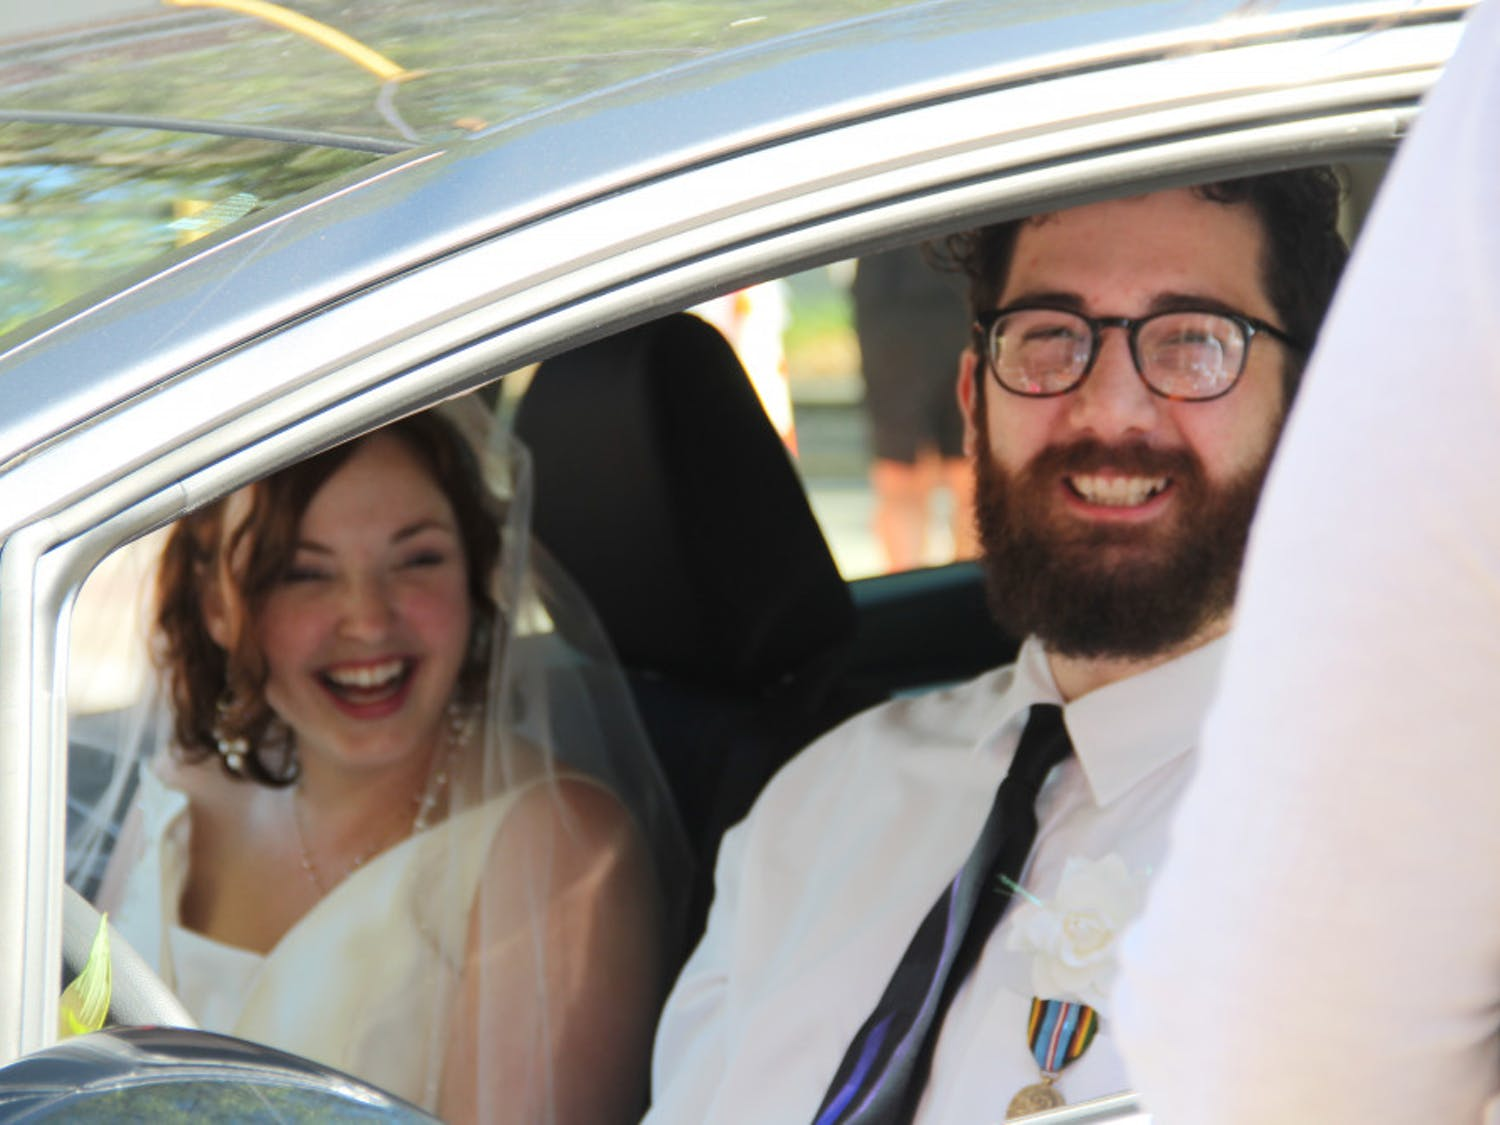 """Decked in veils, flowers and formal wear, couples from across Florida drove cars, trucks and limousines to the drive-thru-turned-""""Wedding Window."""" They pronounced their love to each other at the Alachua County Family and Civil Courthouse from about 5 to 11 p.m. Thursday. Read more here."""